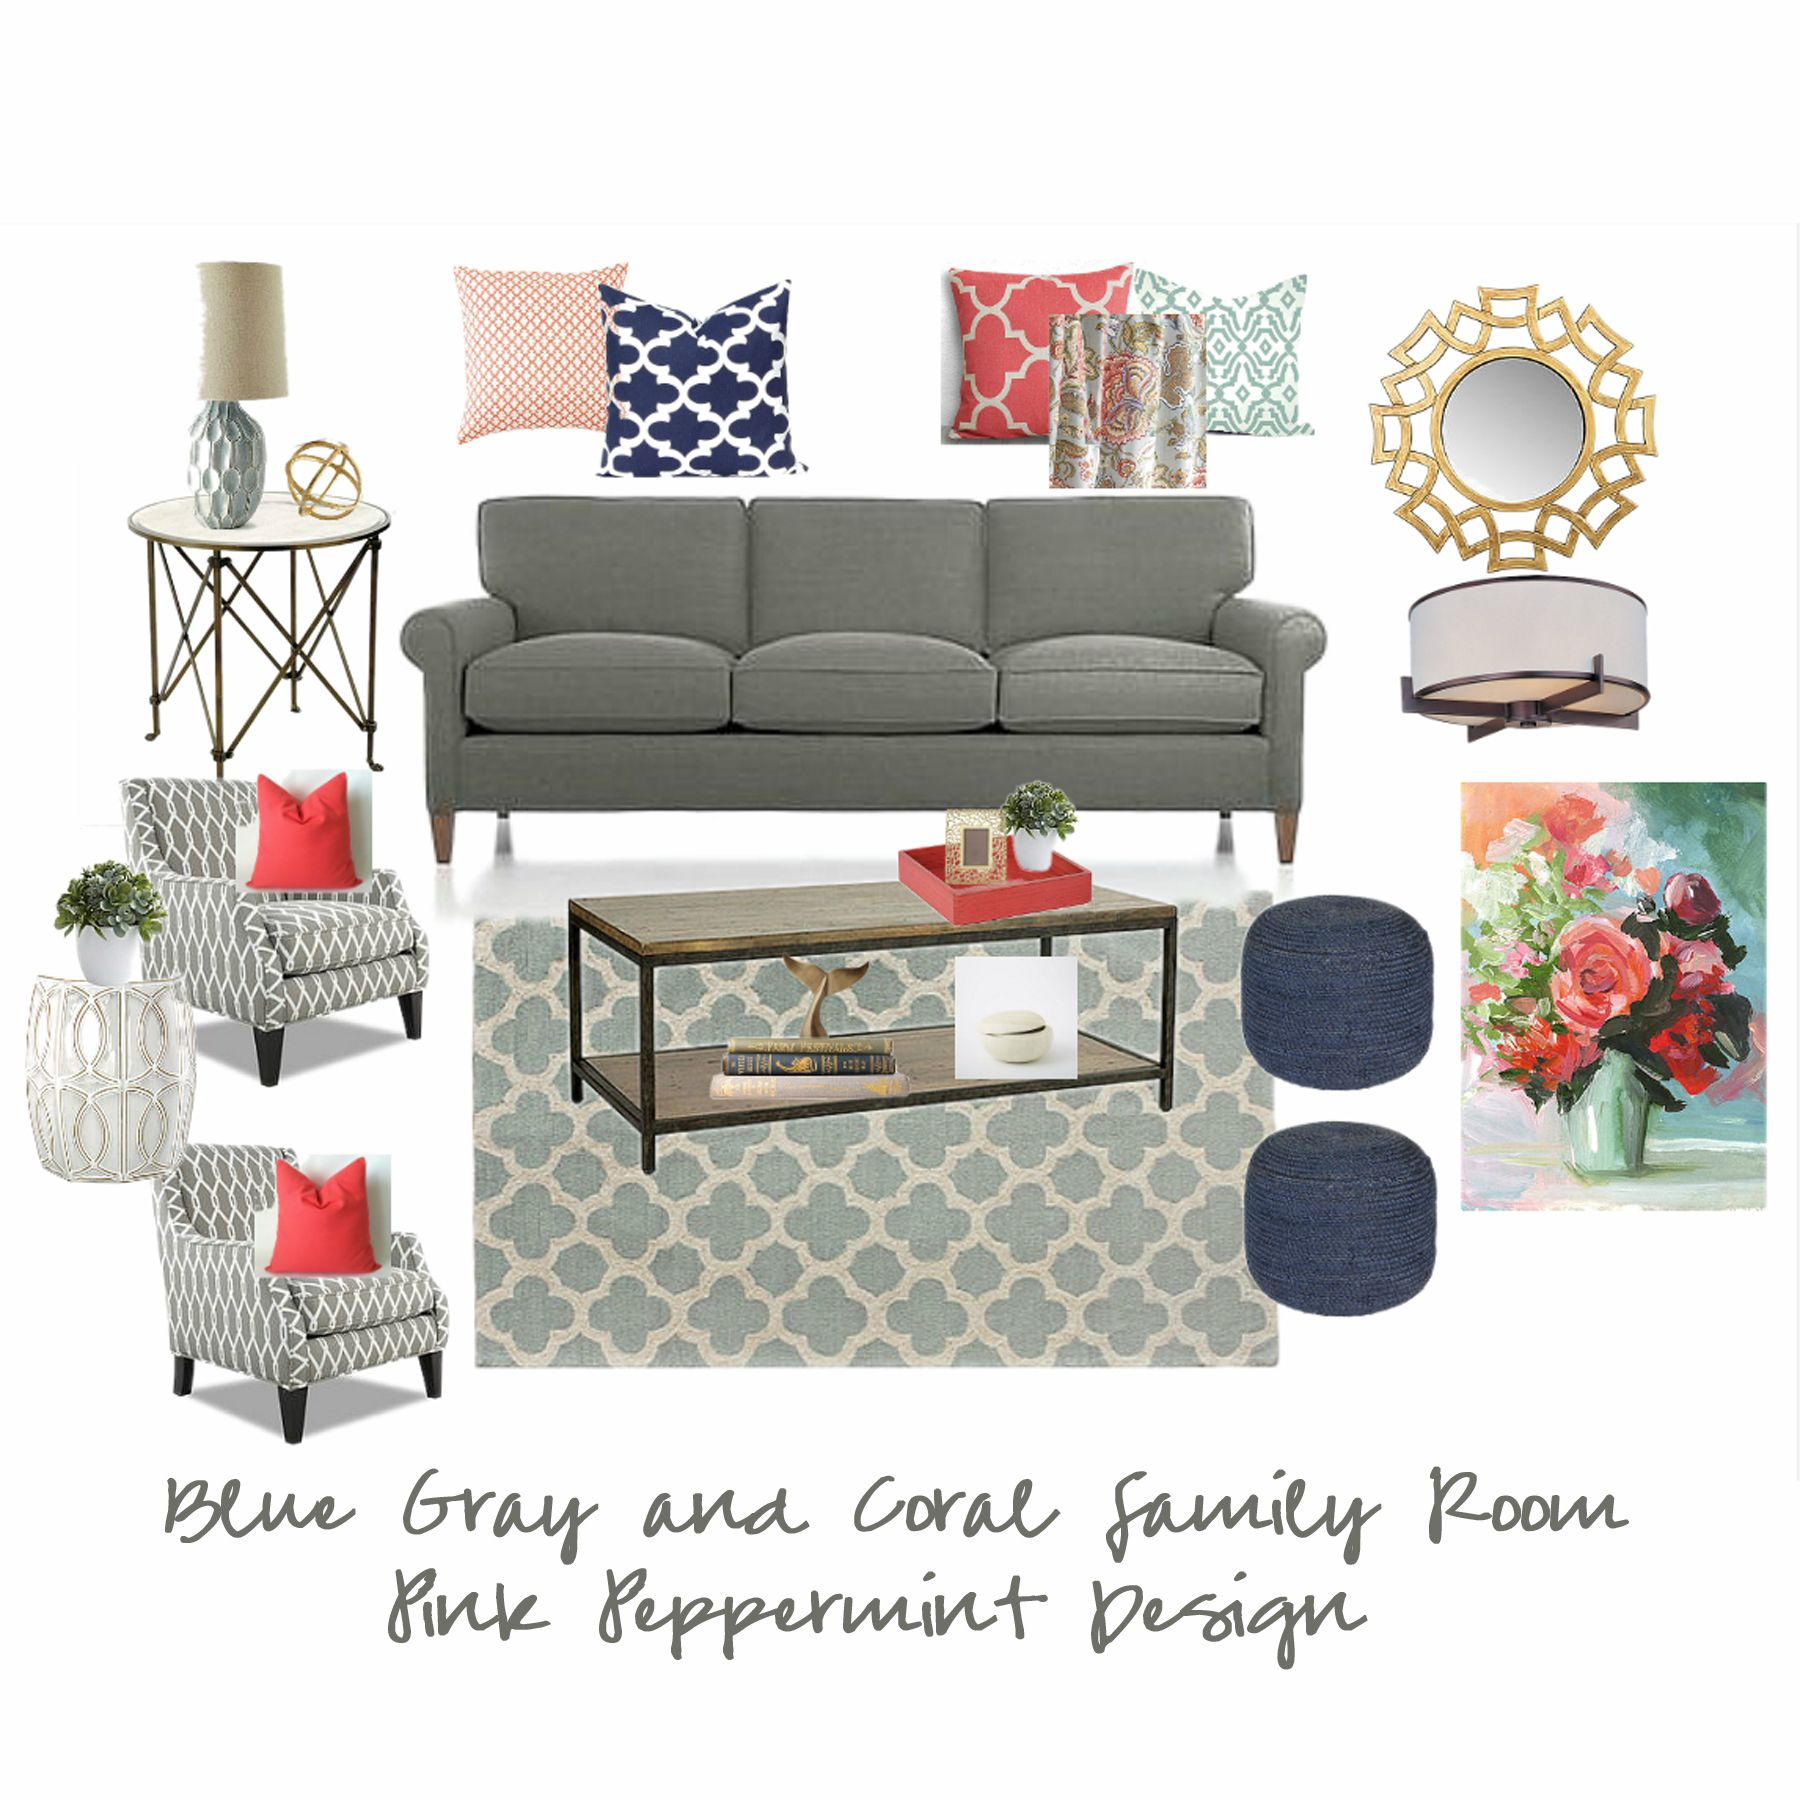 Image Result For Blue And Coral Living Room Family Room Colors Blue Coral Living Room Living Room Decor Gray